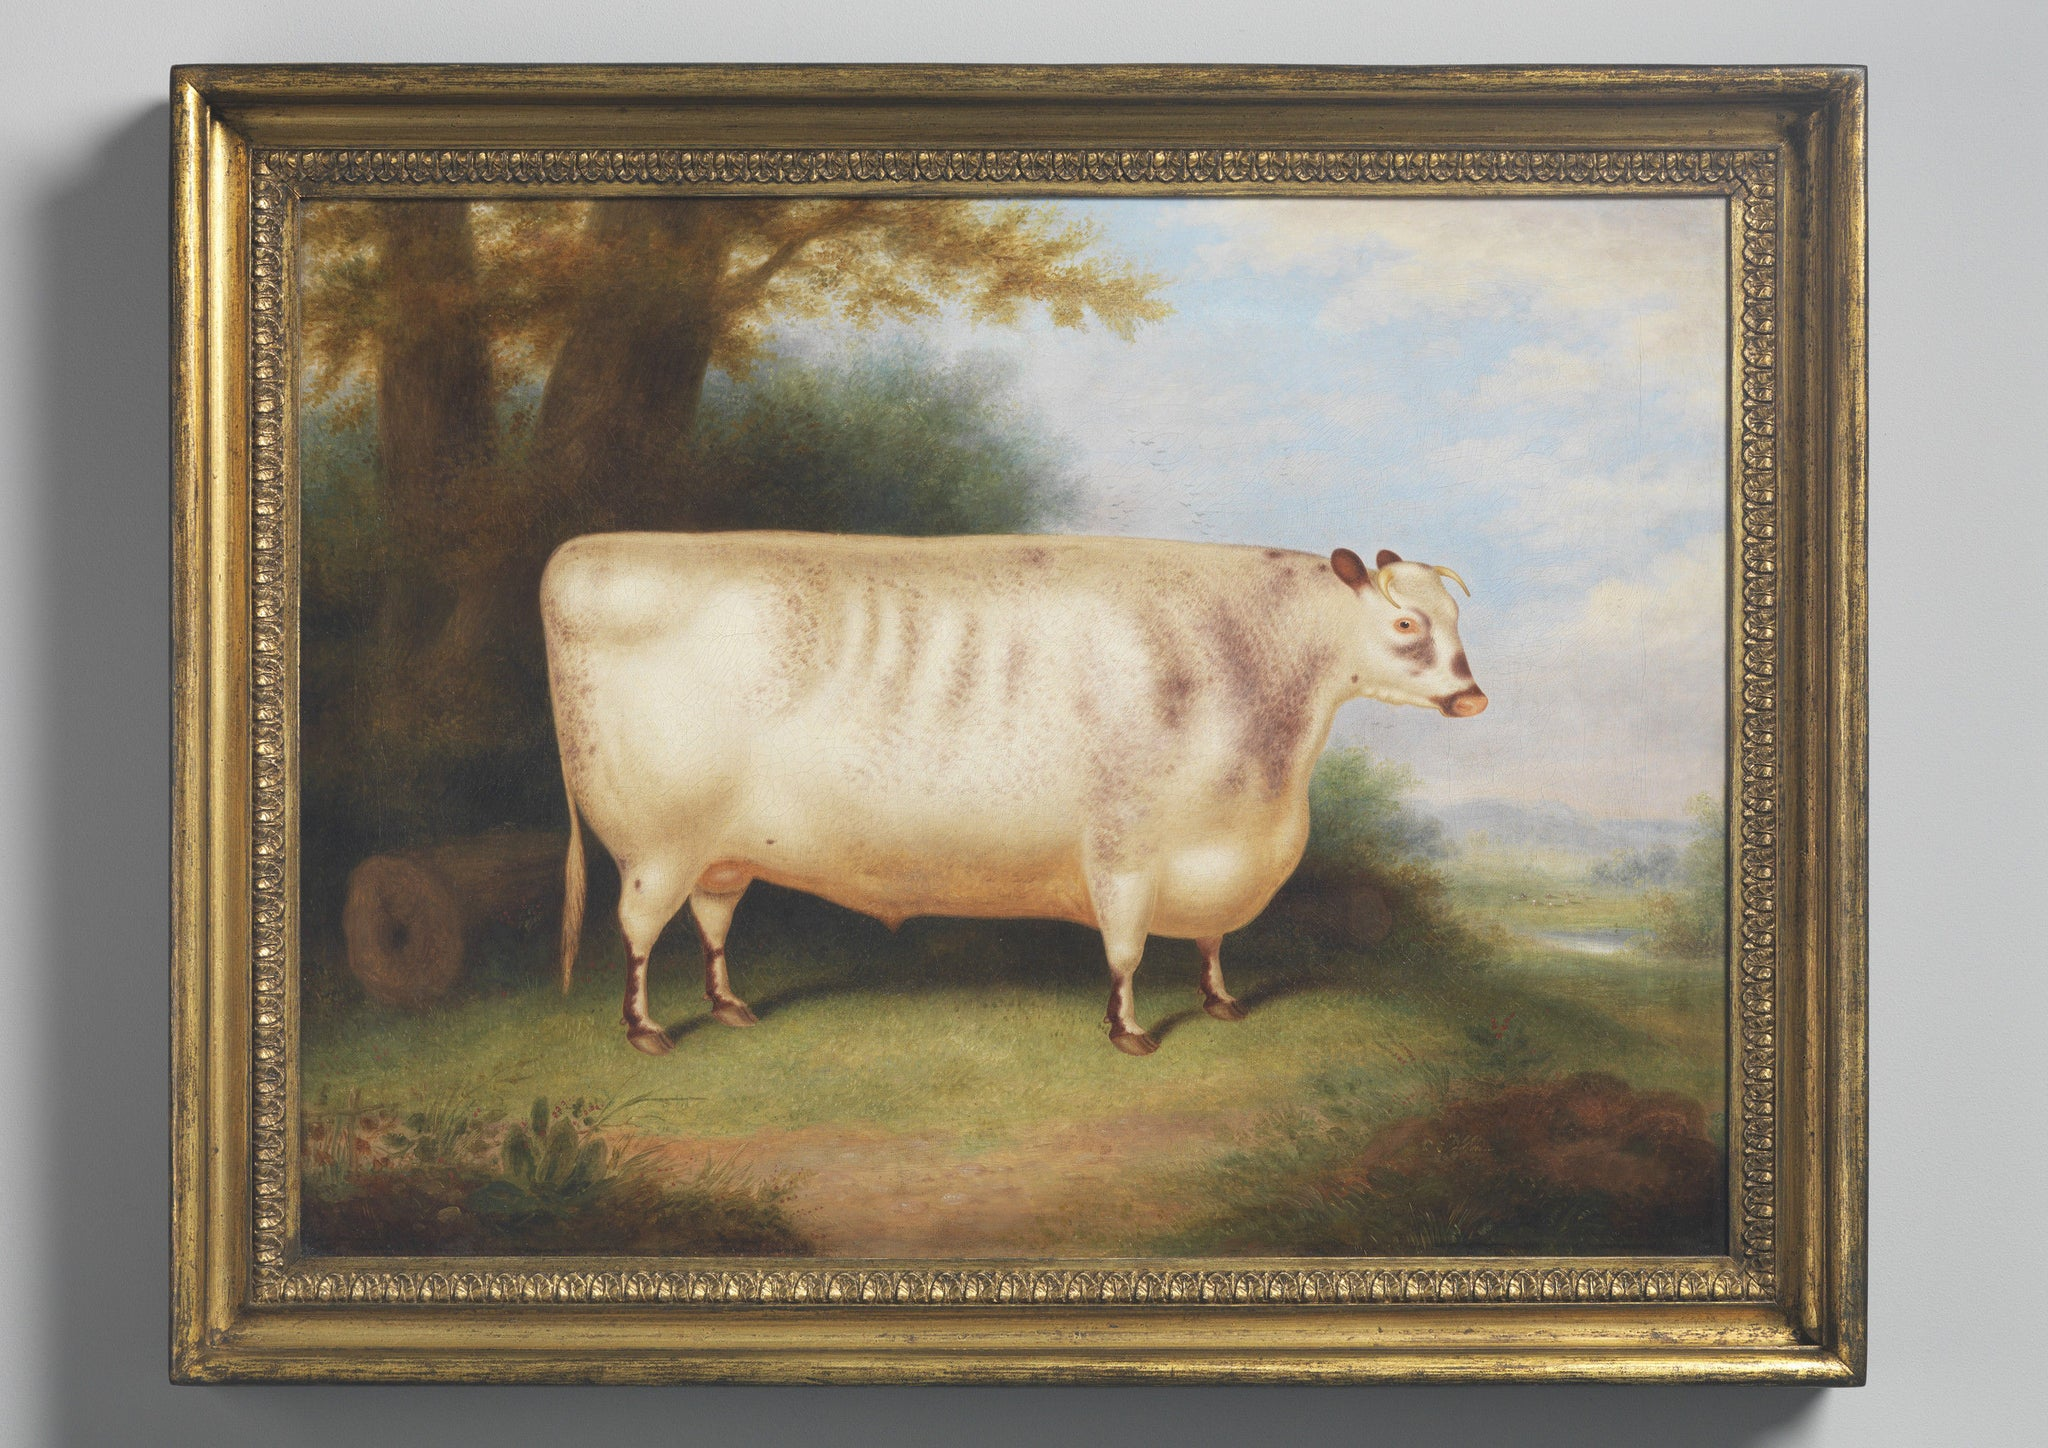 The Prize Shorthorn Ox'